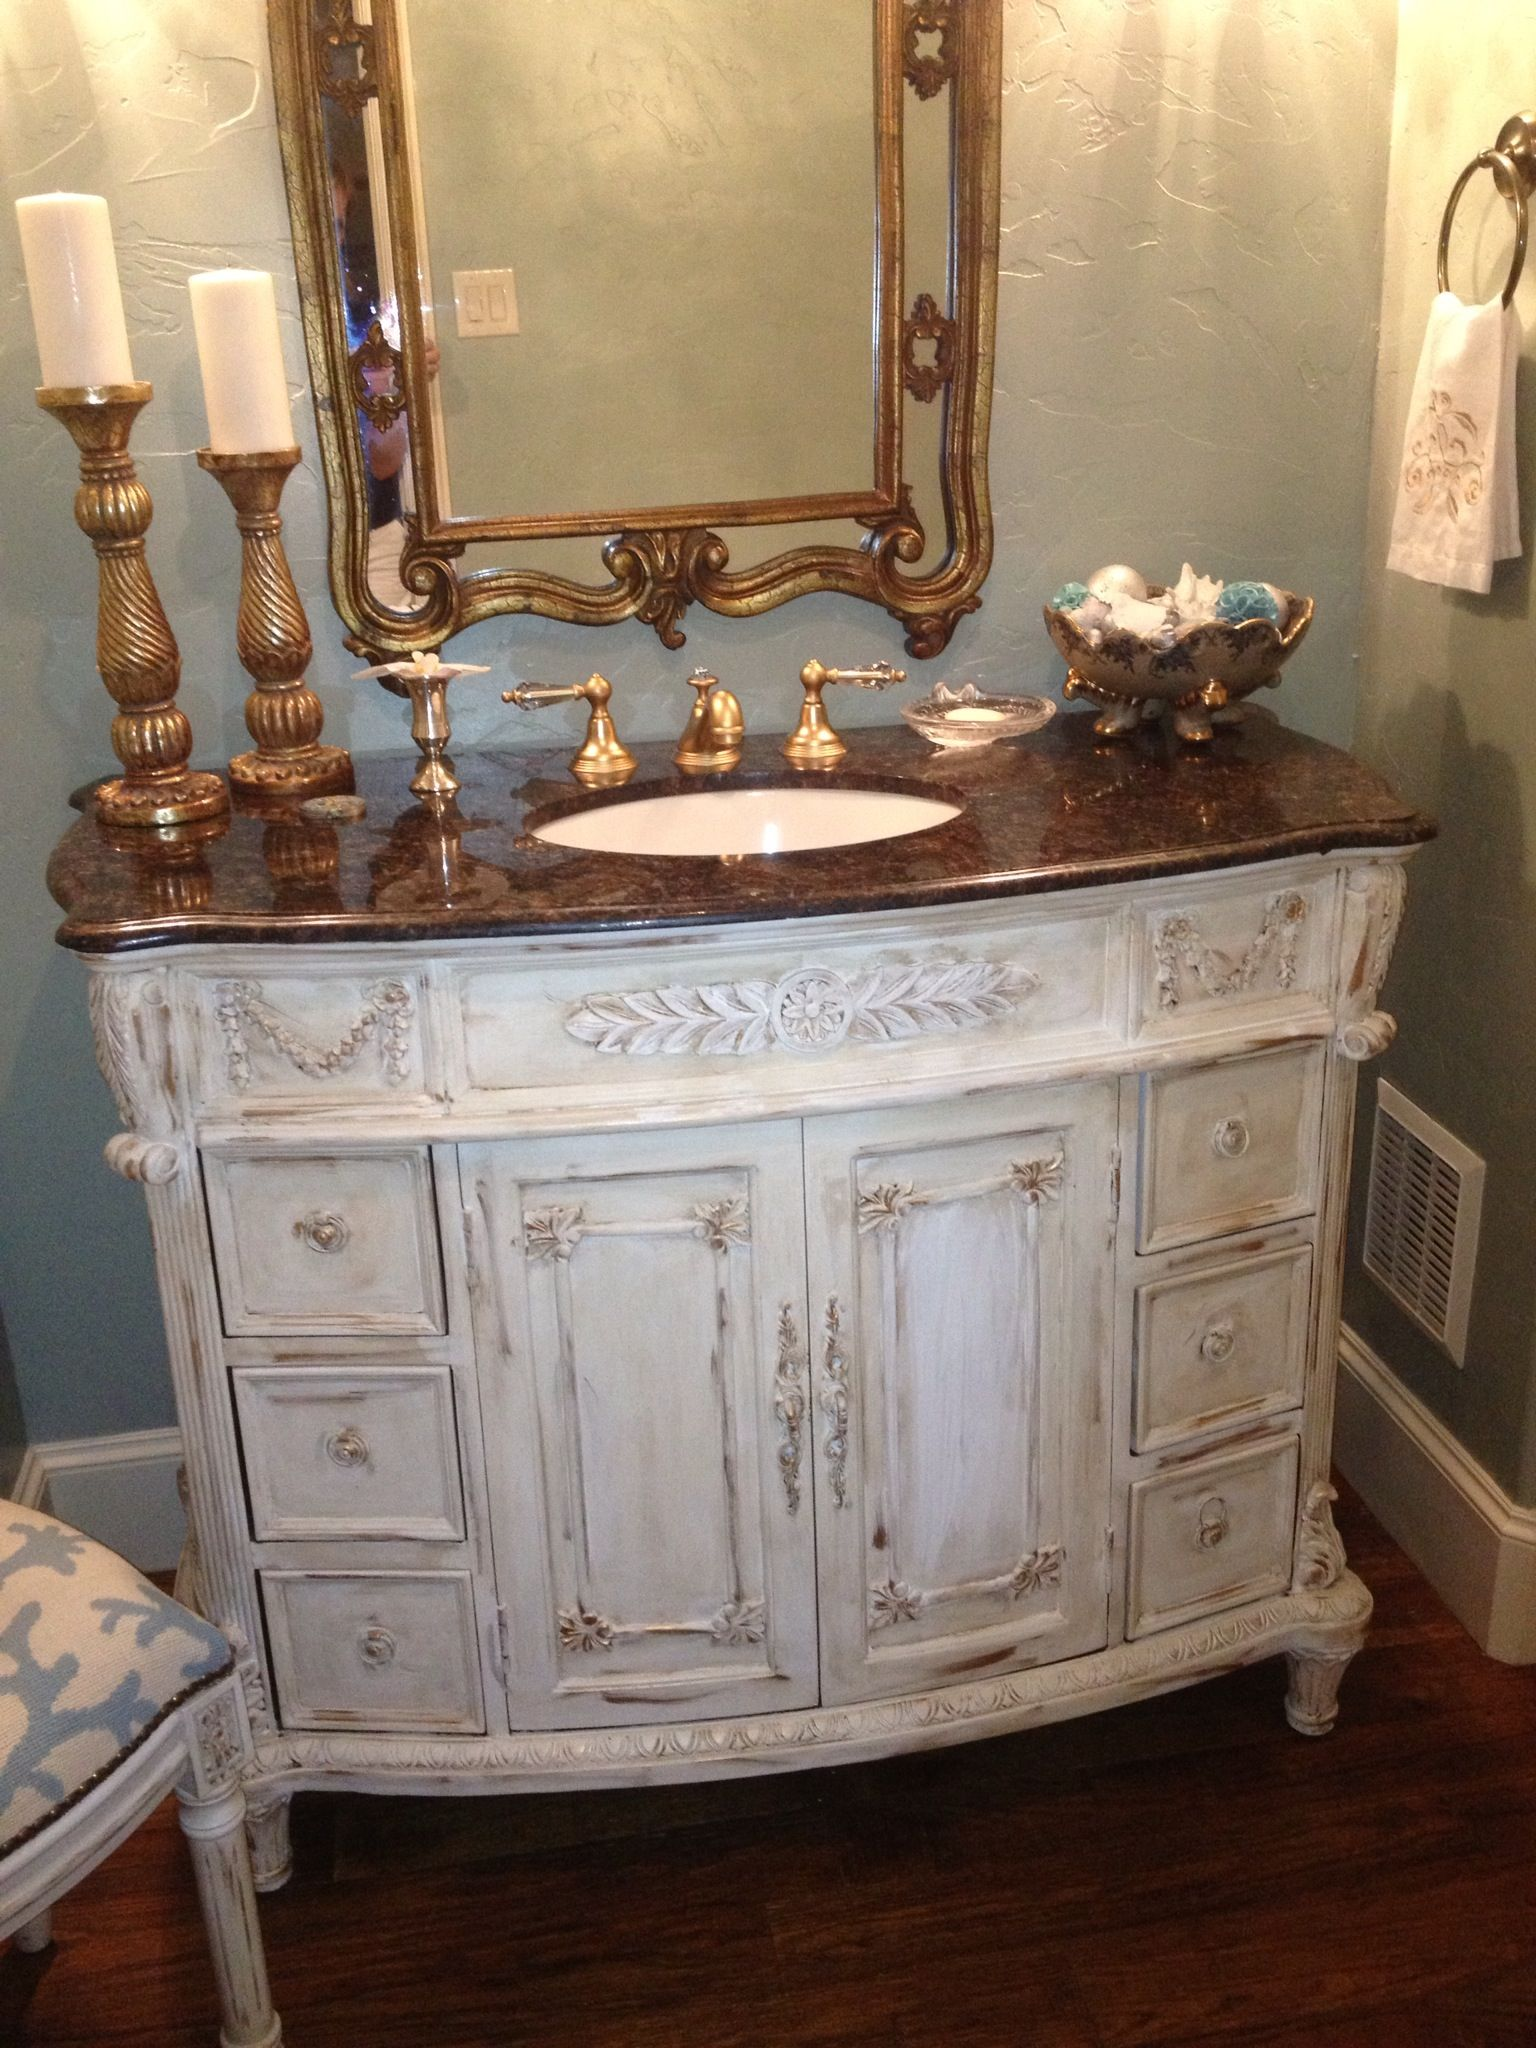 Painted Vanity Furniture: Annie Sloan Chalk Paint! Love Having My Dark Wood Vanity